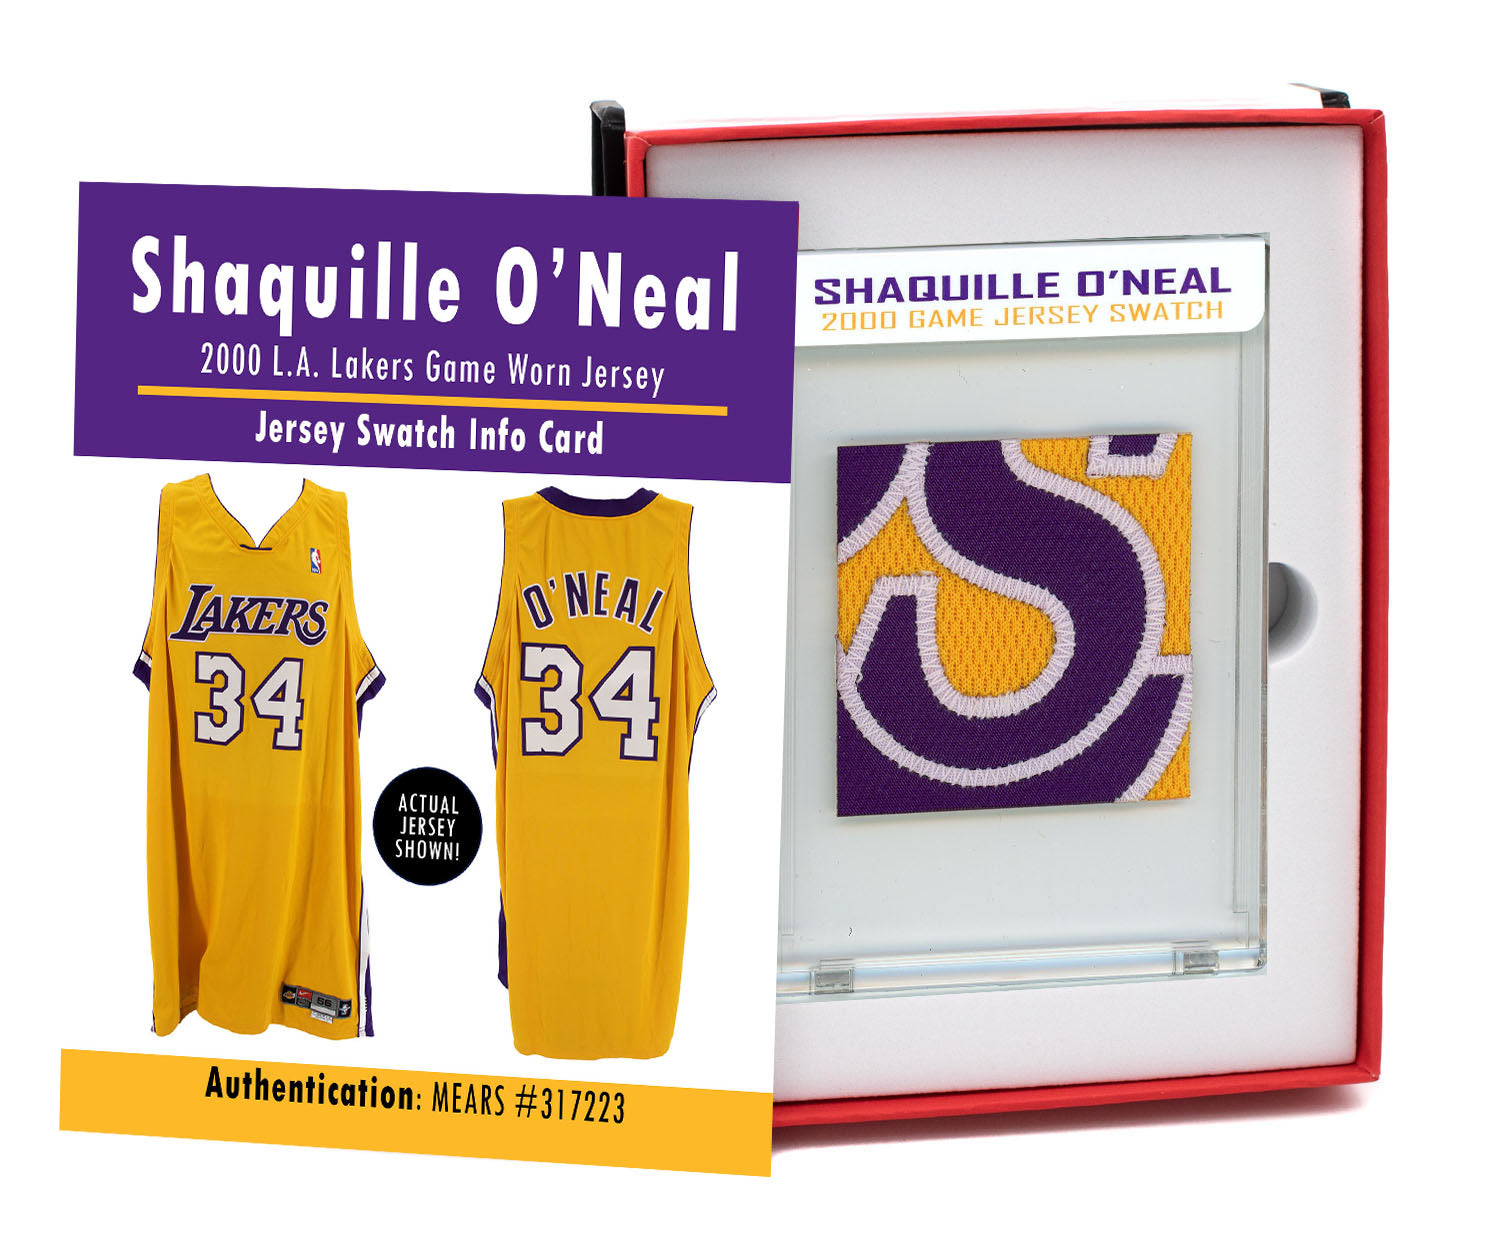 SHAQUILLE O'NEAL 2000 LAKERS GAME WORN JERSEY MYSTERY SEALED SWATCH BOX!